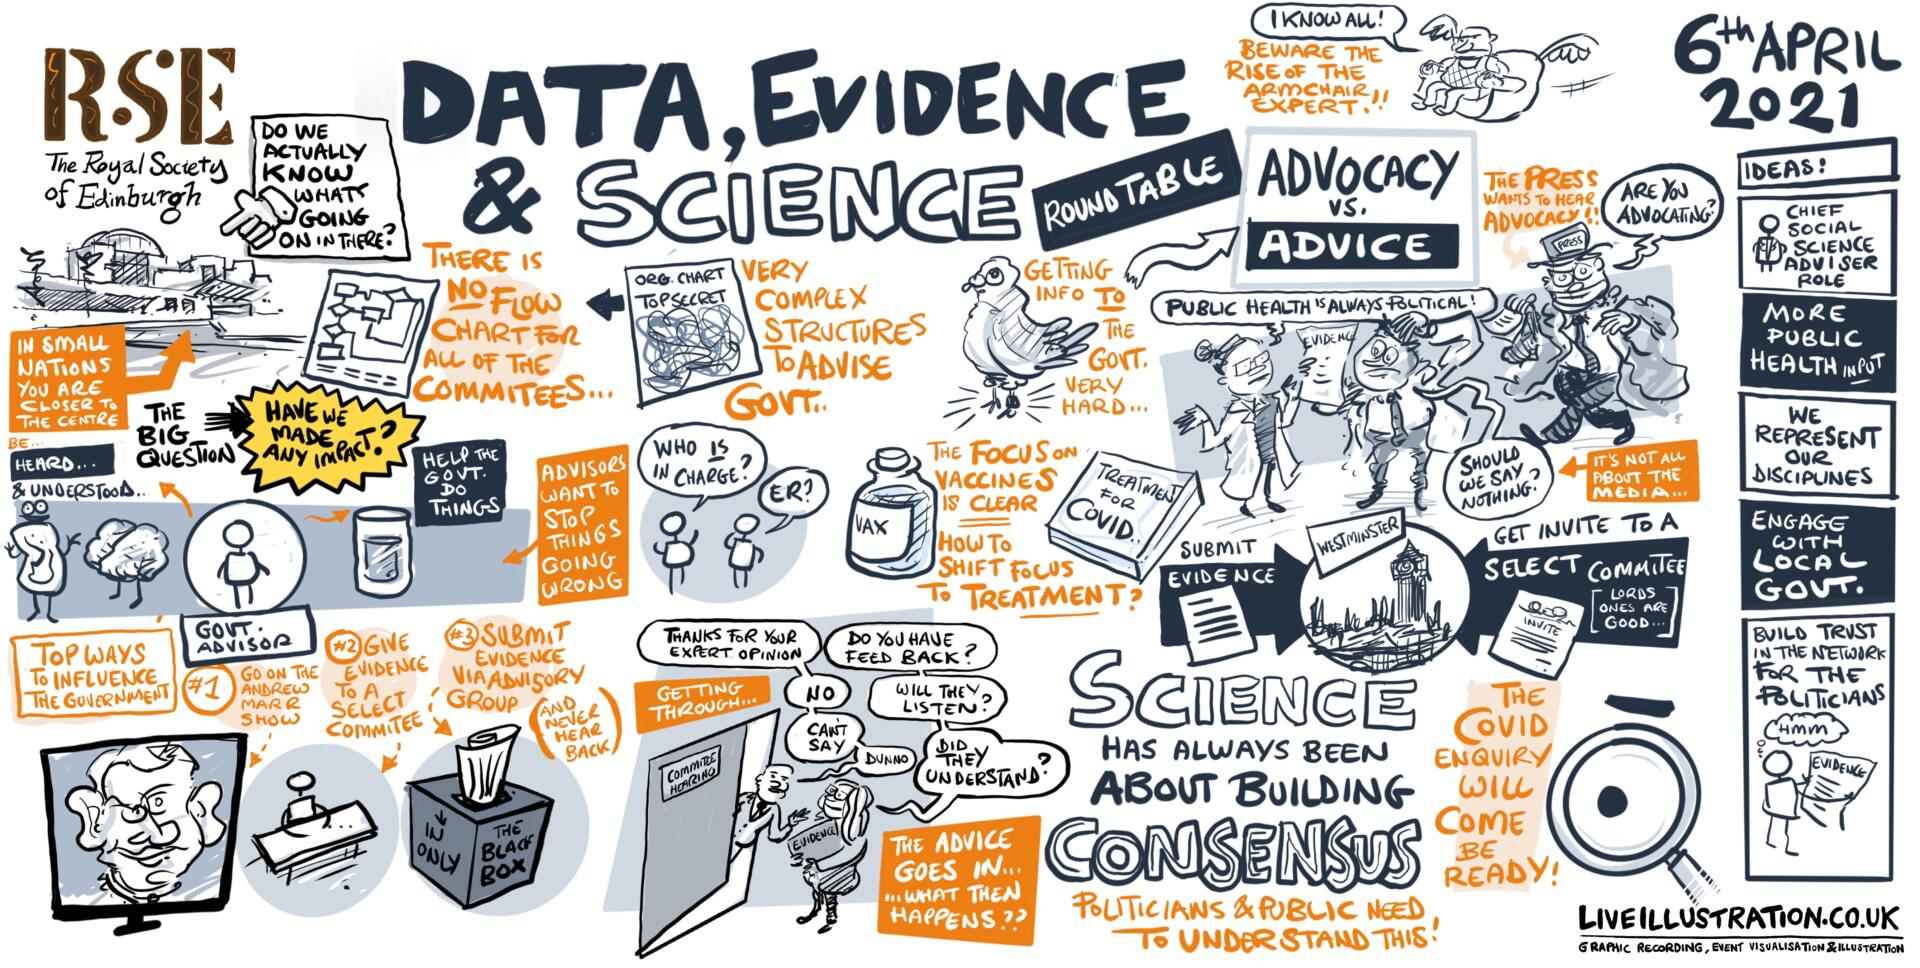 A digitally illustrated doodle including key themes from the topic 'The challenges of advising during a pandemic'